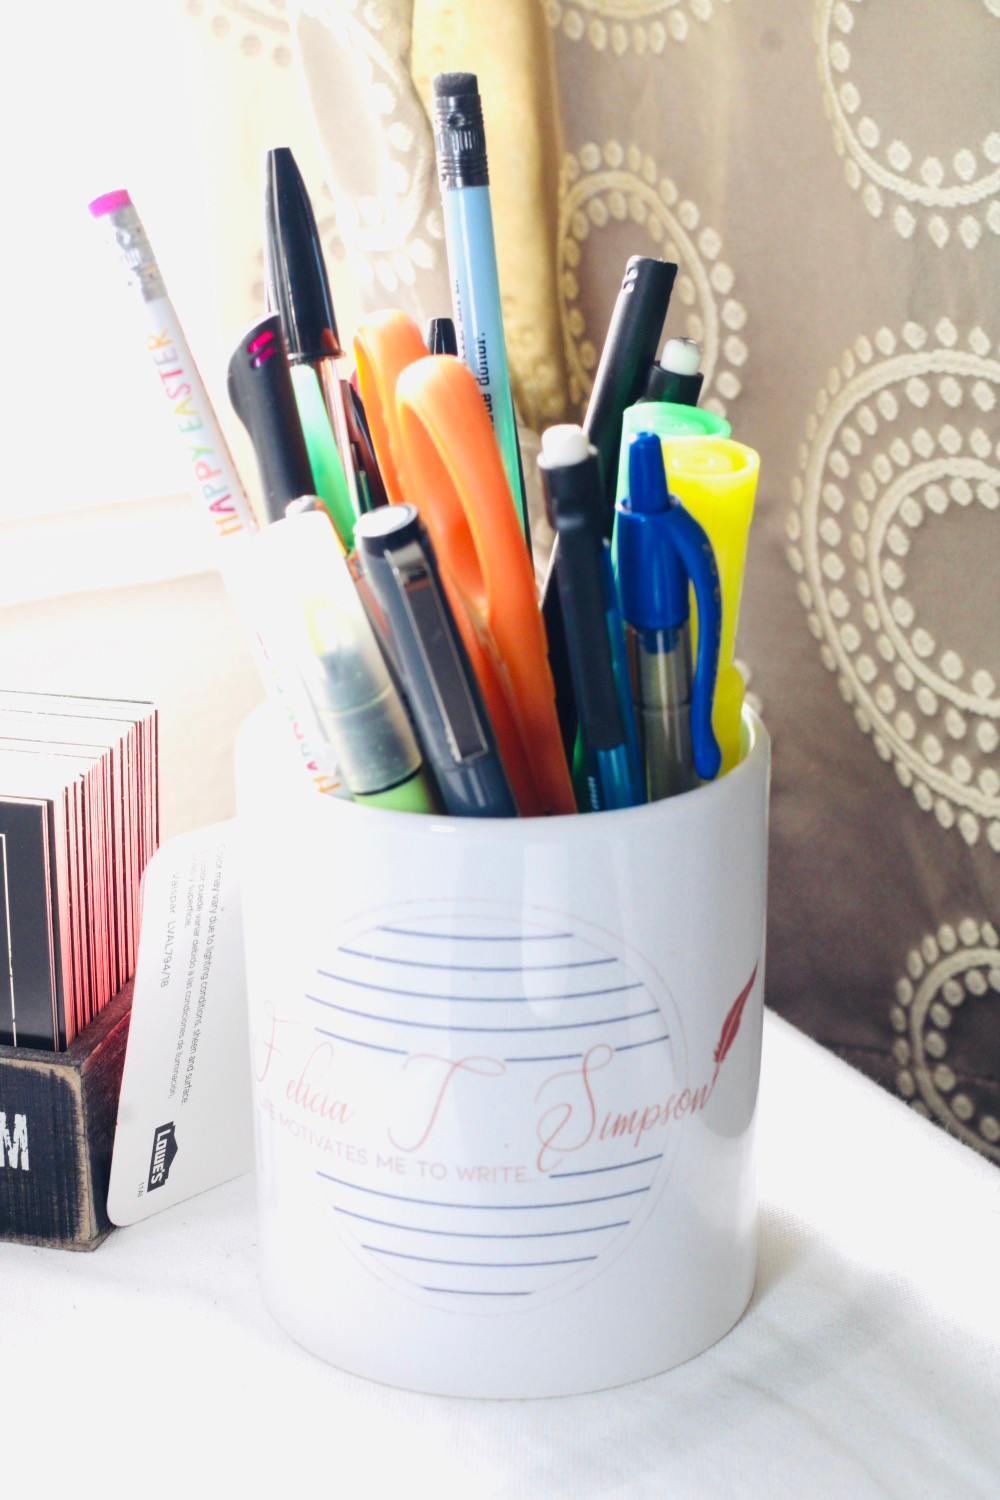 white coffee mug with pens and pencils in it